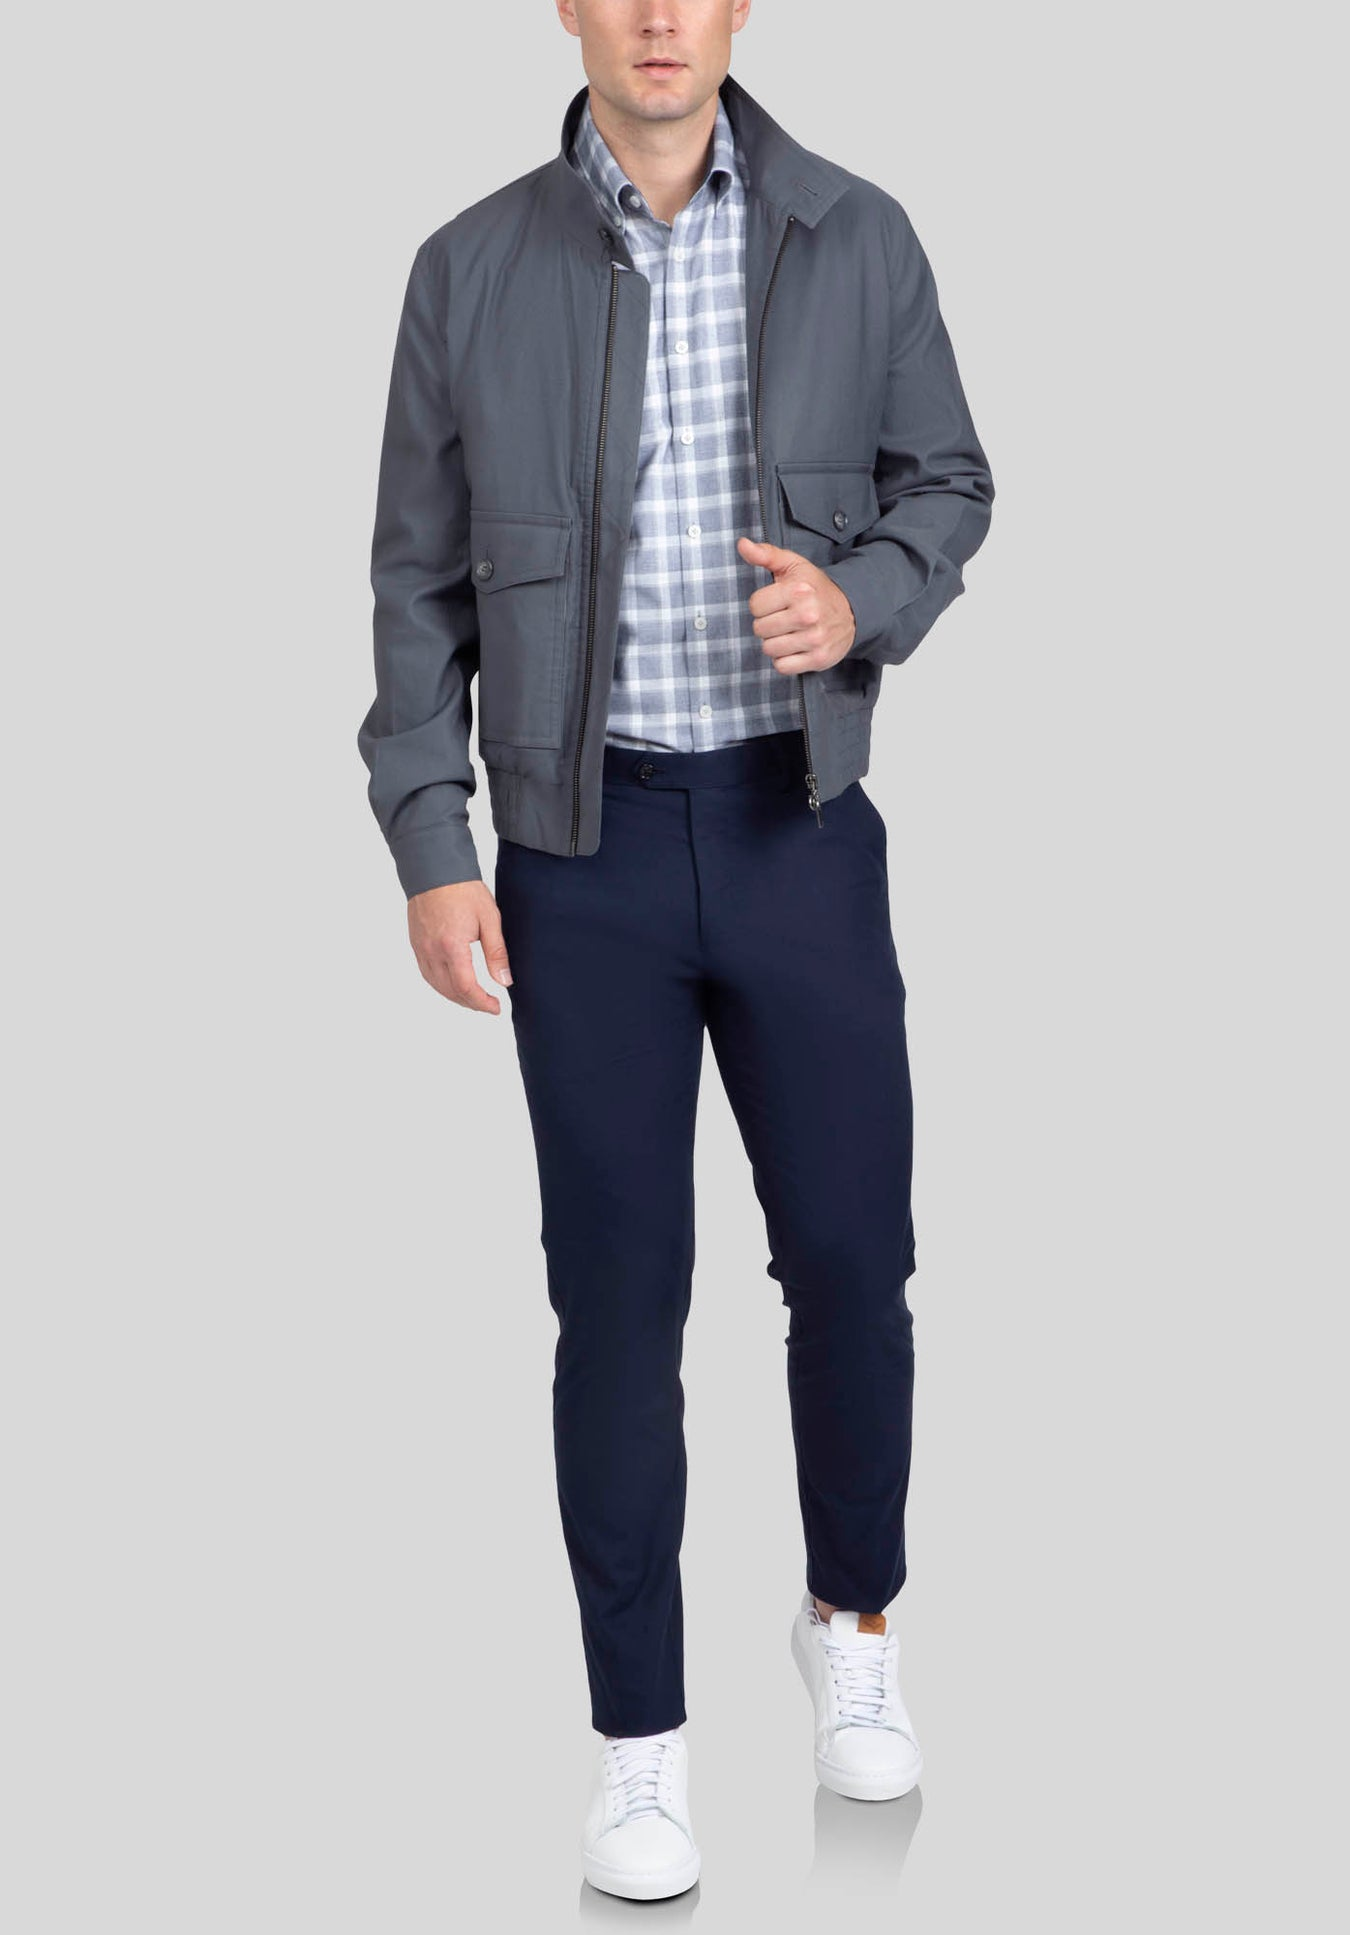 BOWMAN CASUAL JACKET FMF535 - Grey